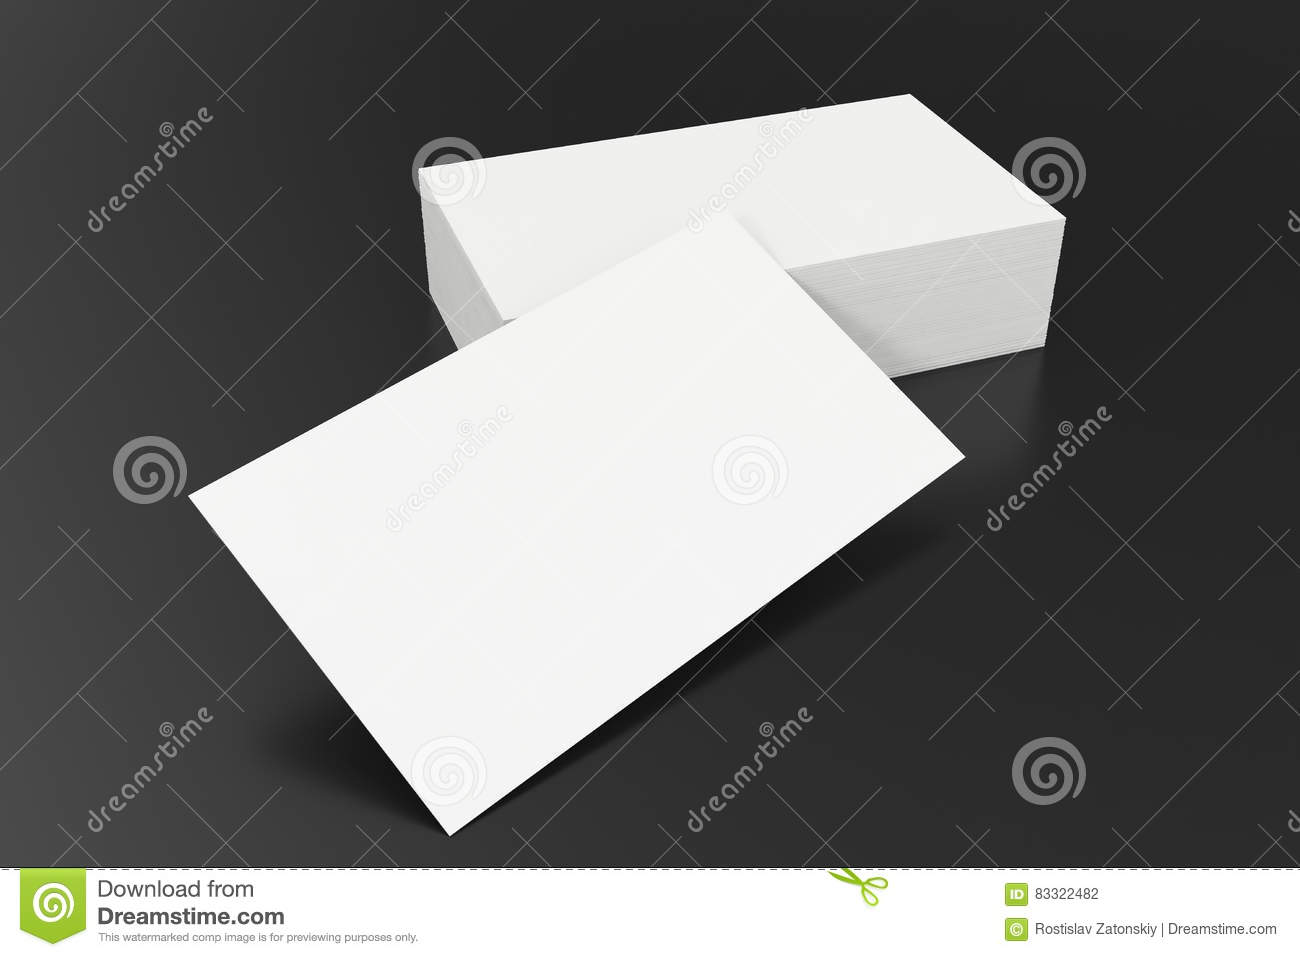 Business cards blank mockup template on balck background 3d download business cards blank mockup template on balck background 3d rendering stock photo reheart Image collections